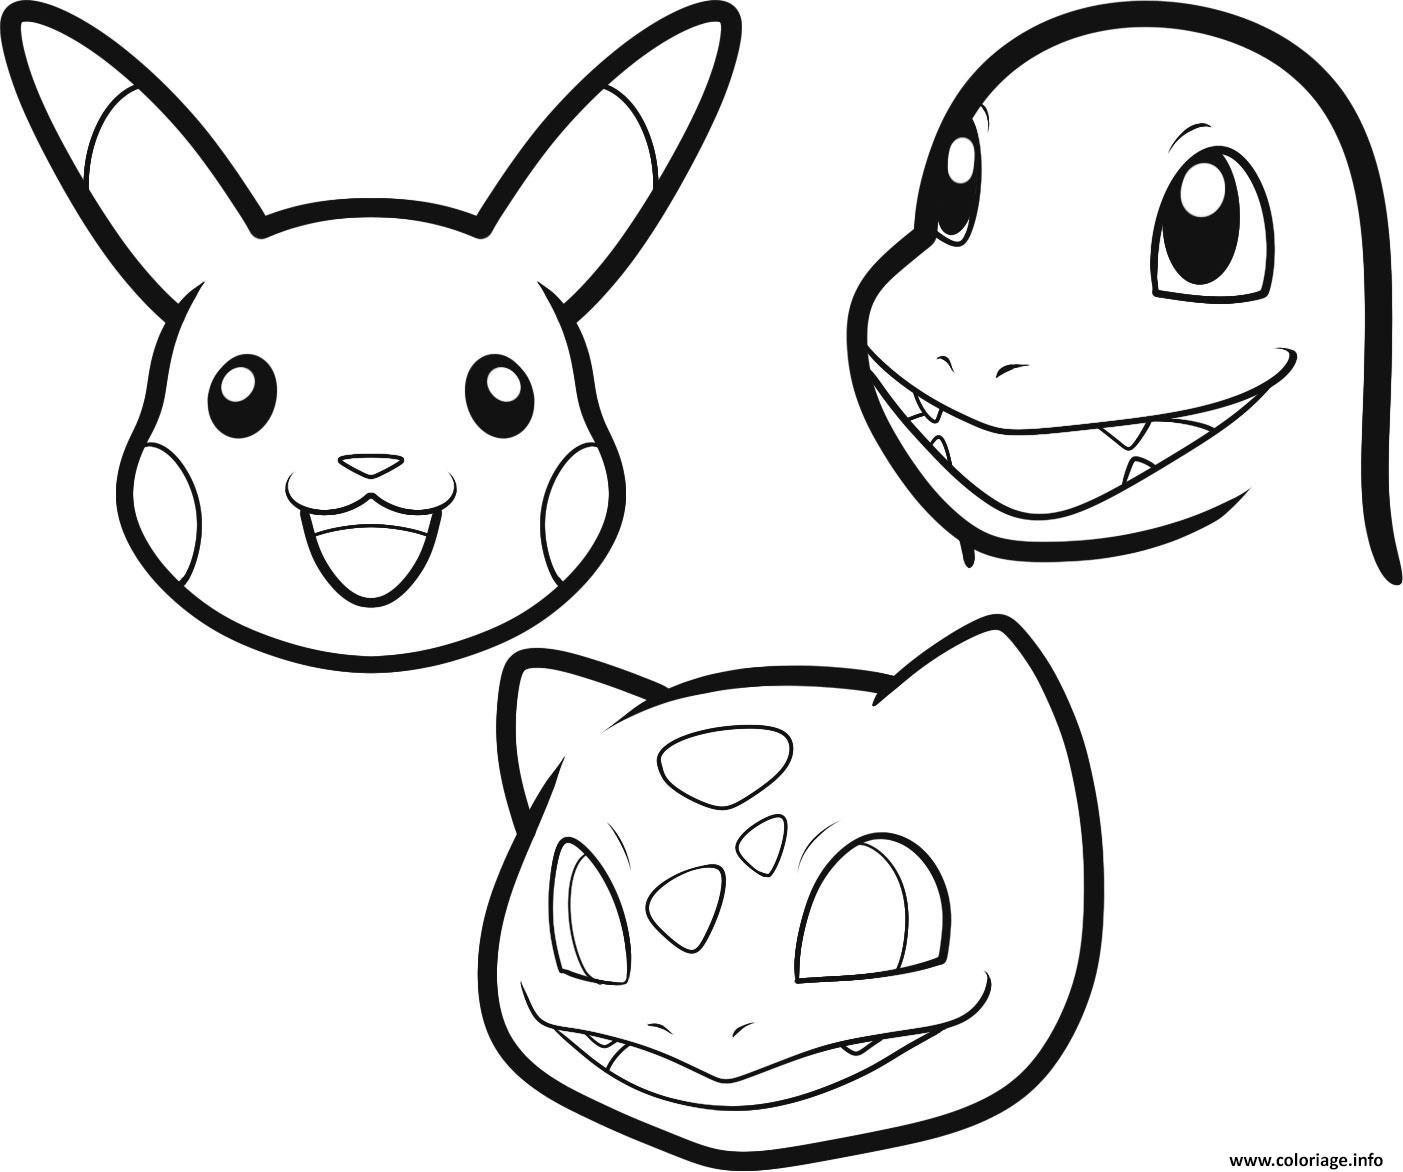 coloriage pokemon facile 137 dessin gratuit